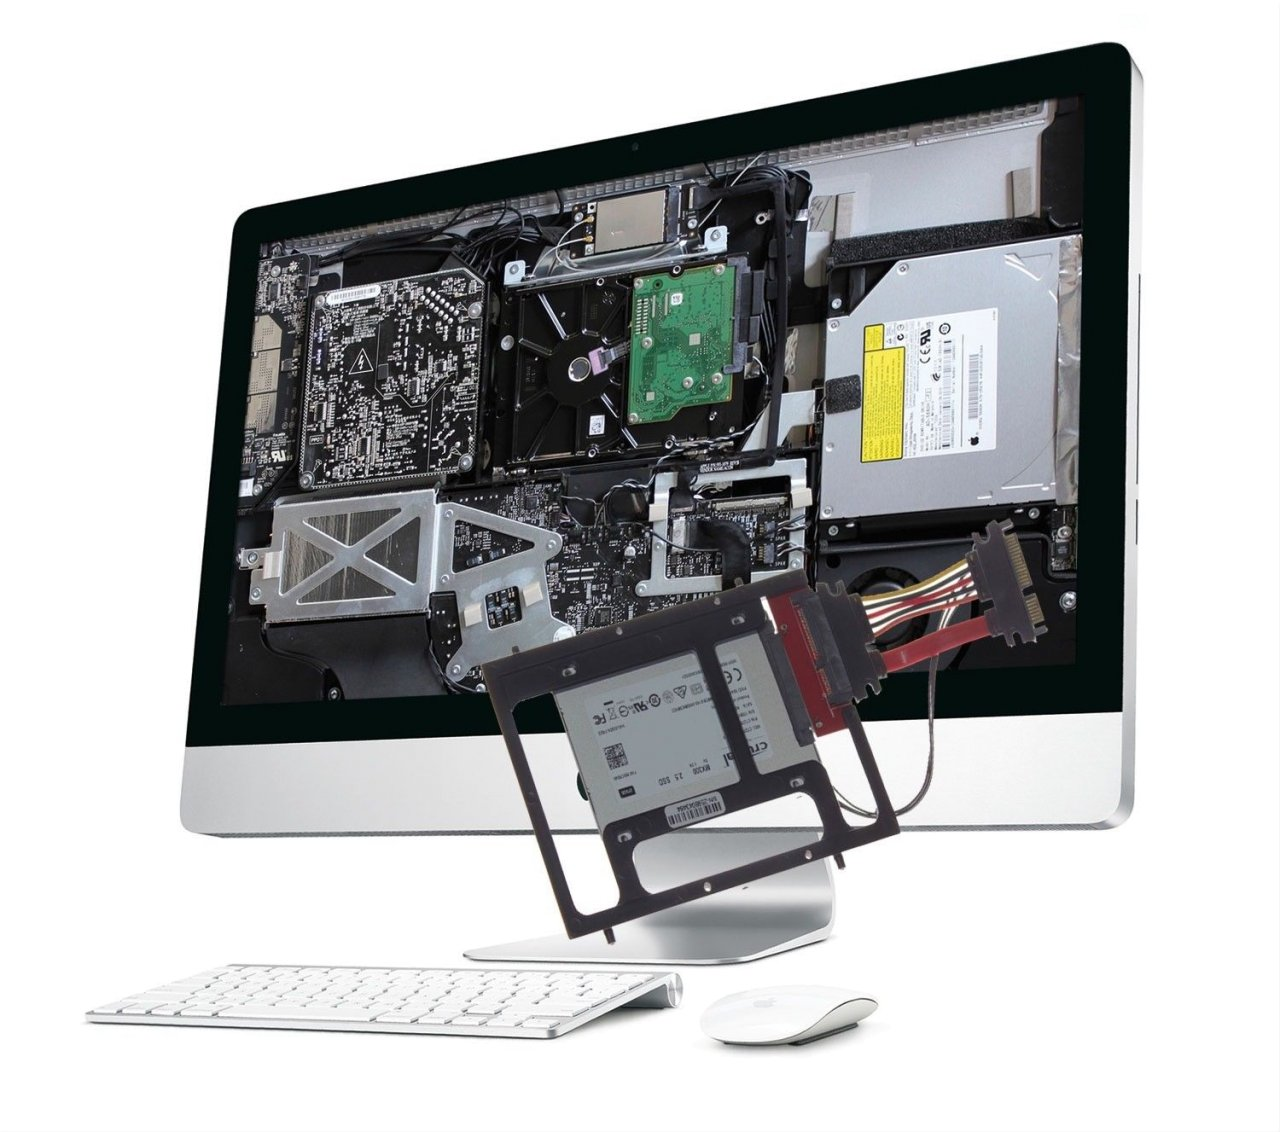 "DIY 1 TB SSD Upgradekit iMac 21.5"" A1311 / iMac 27"" A1312 Mid und Late 2011"